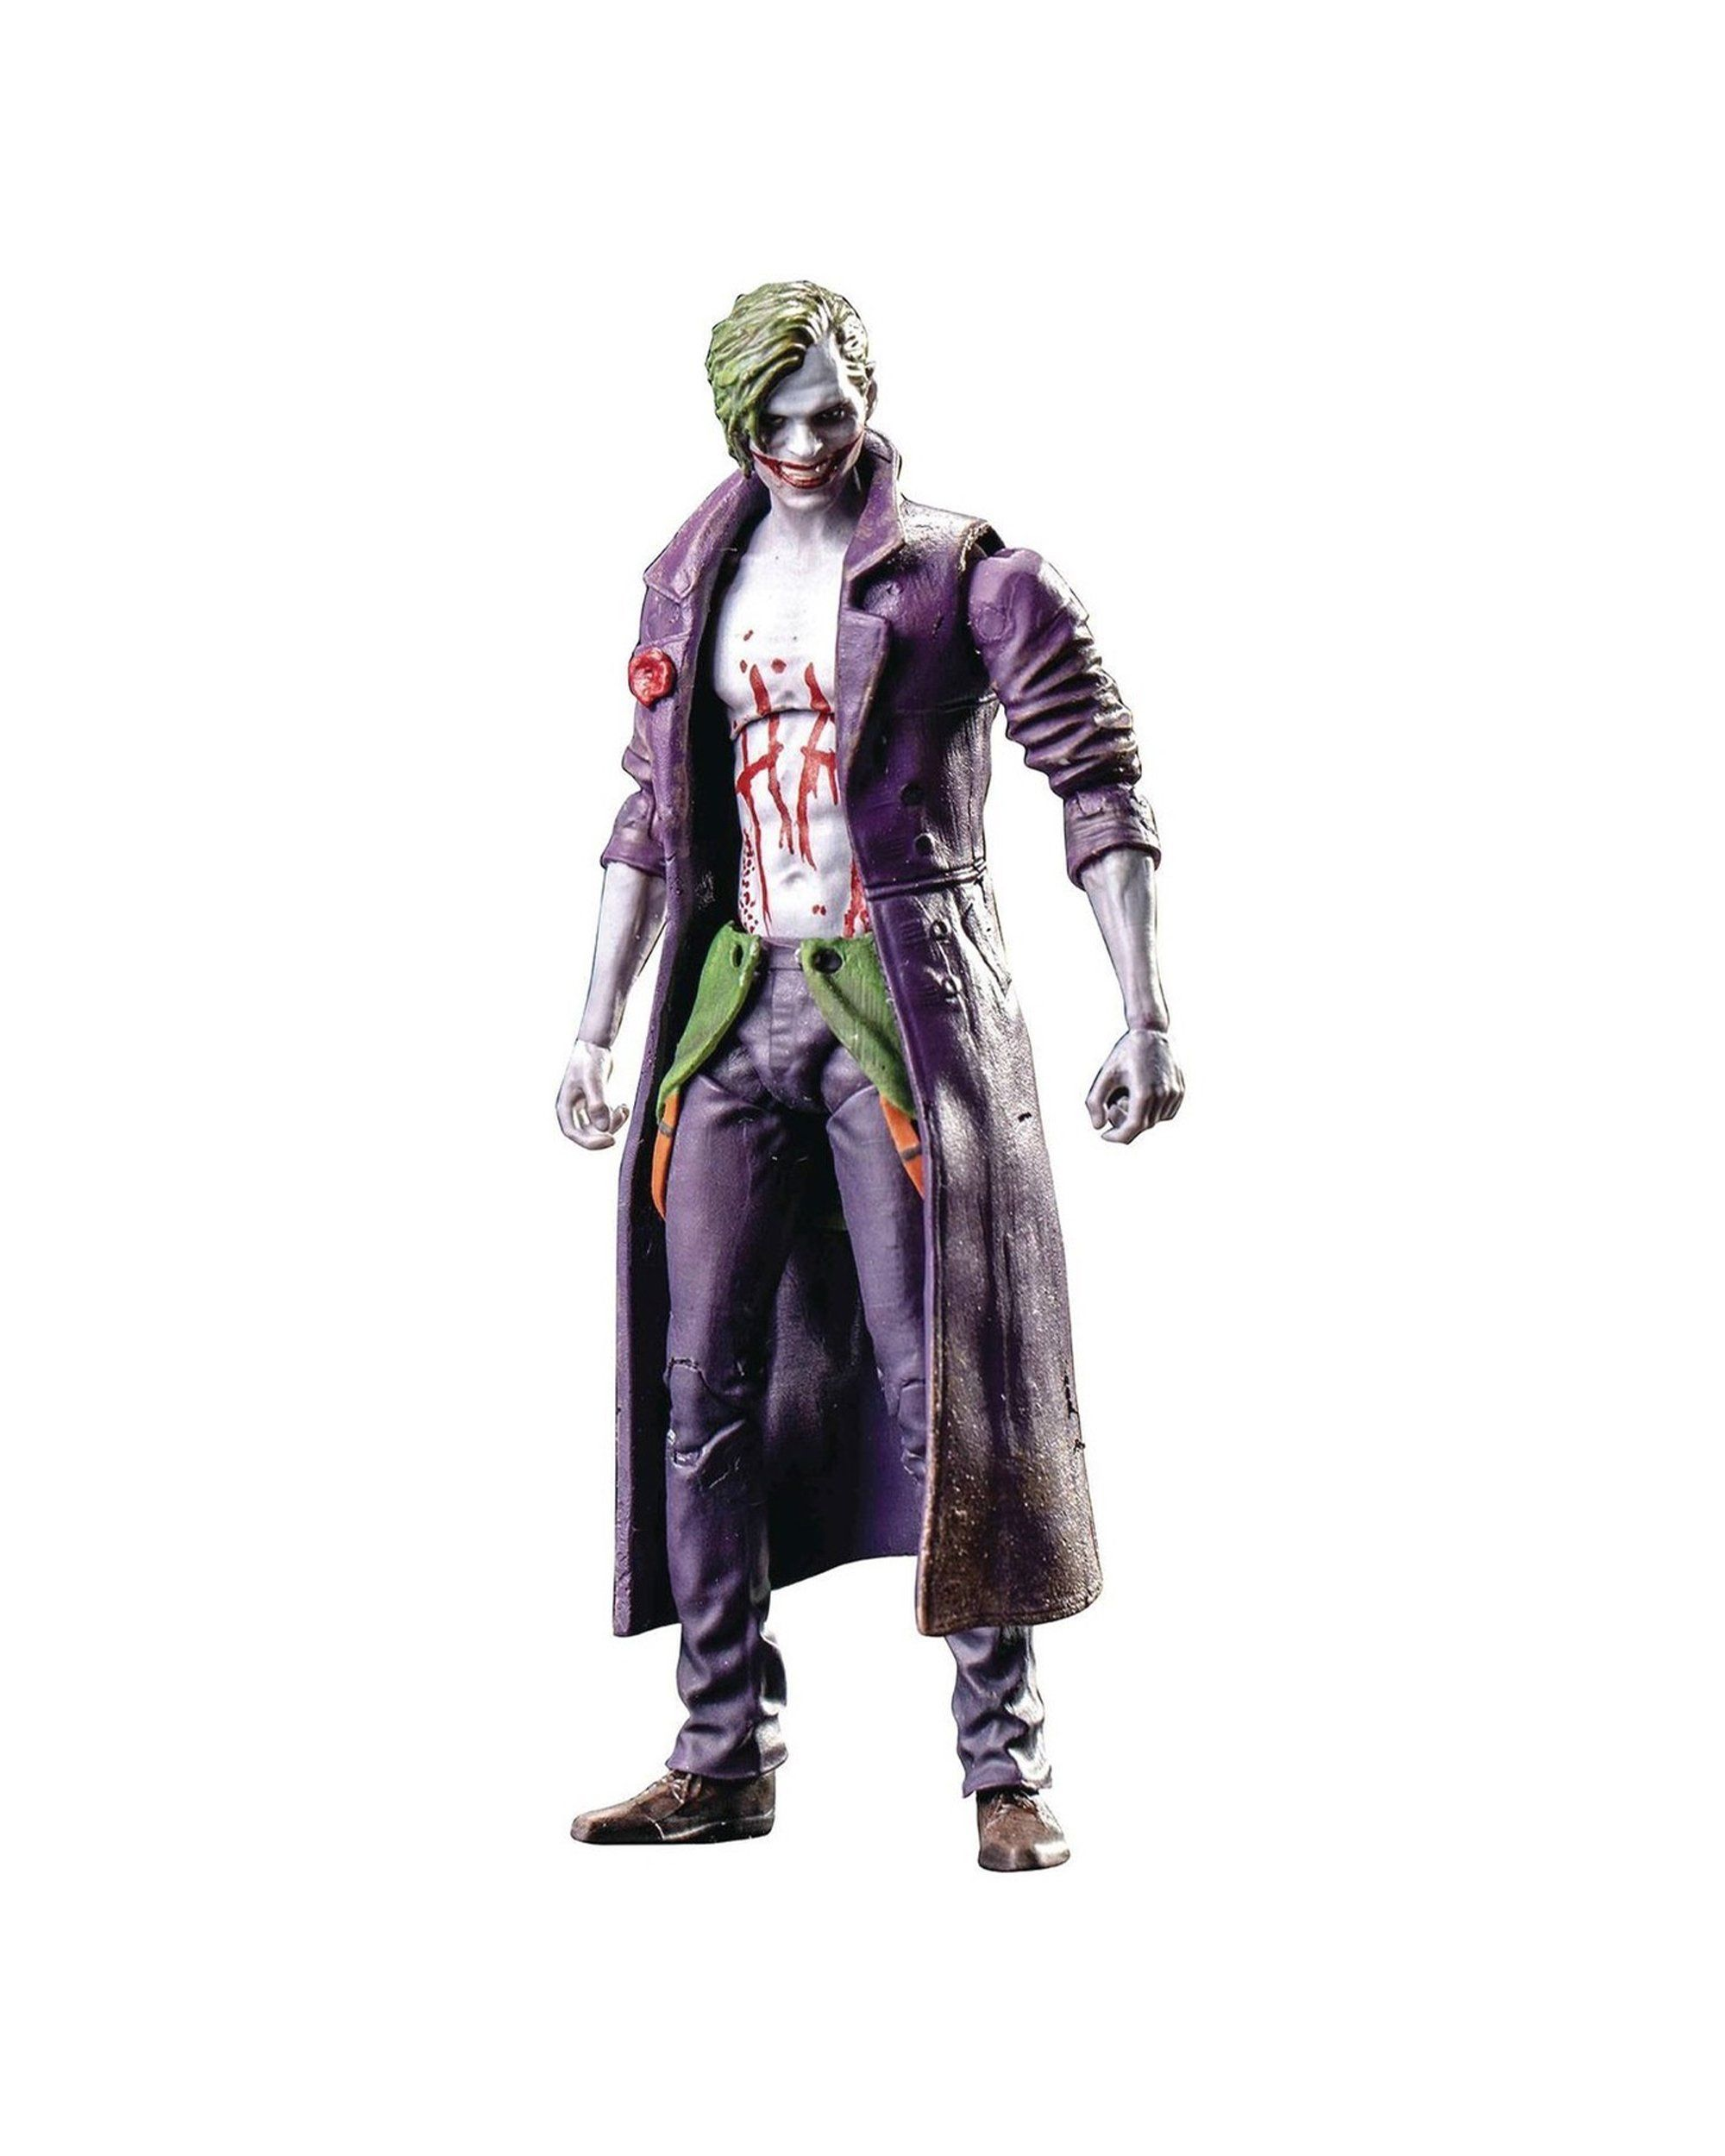 Injustice 2 Joker 1 18 Scale Action Figure Previews Exclusive In 2021 Injustice 2 Joker Dc Injustice Injustice